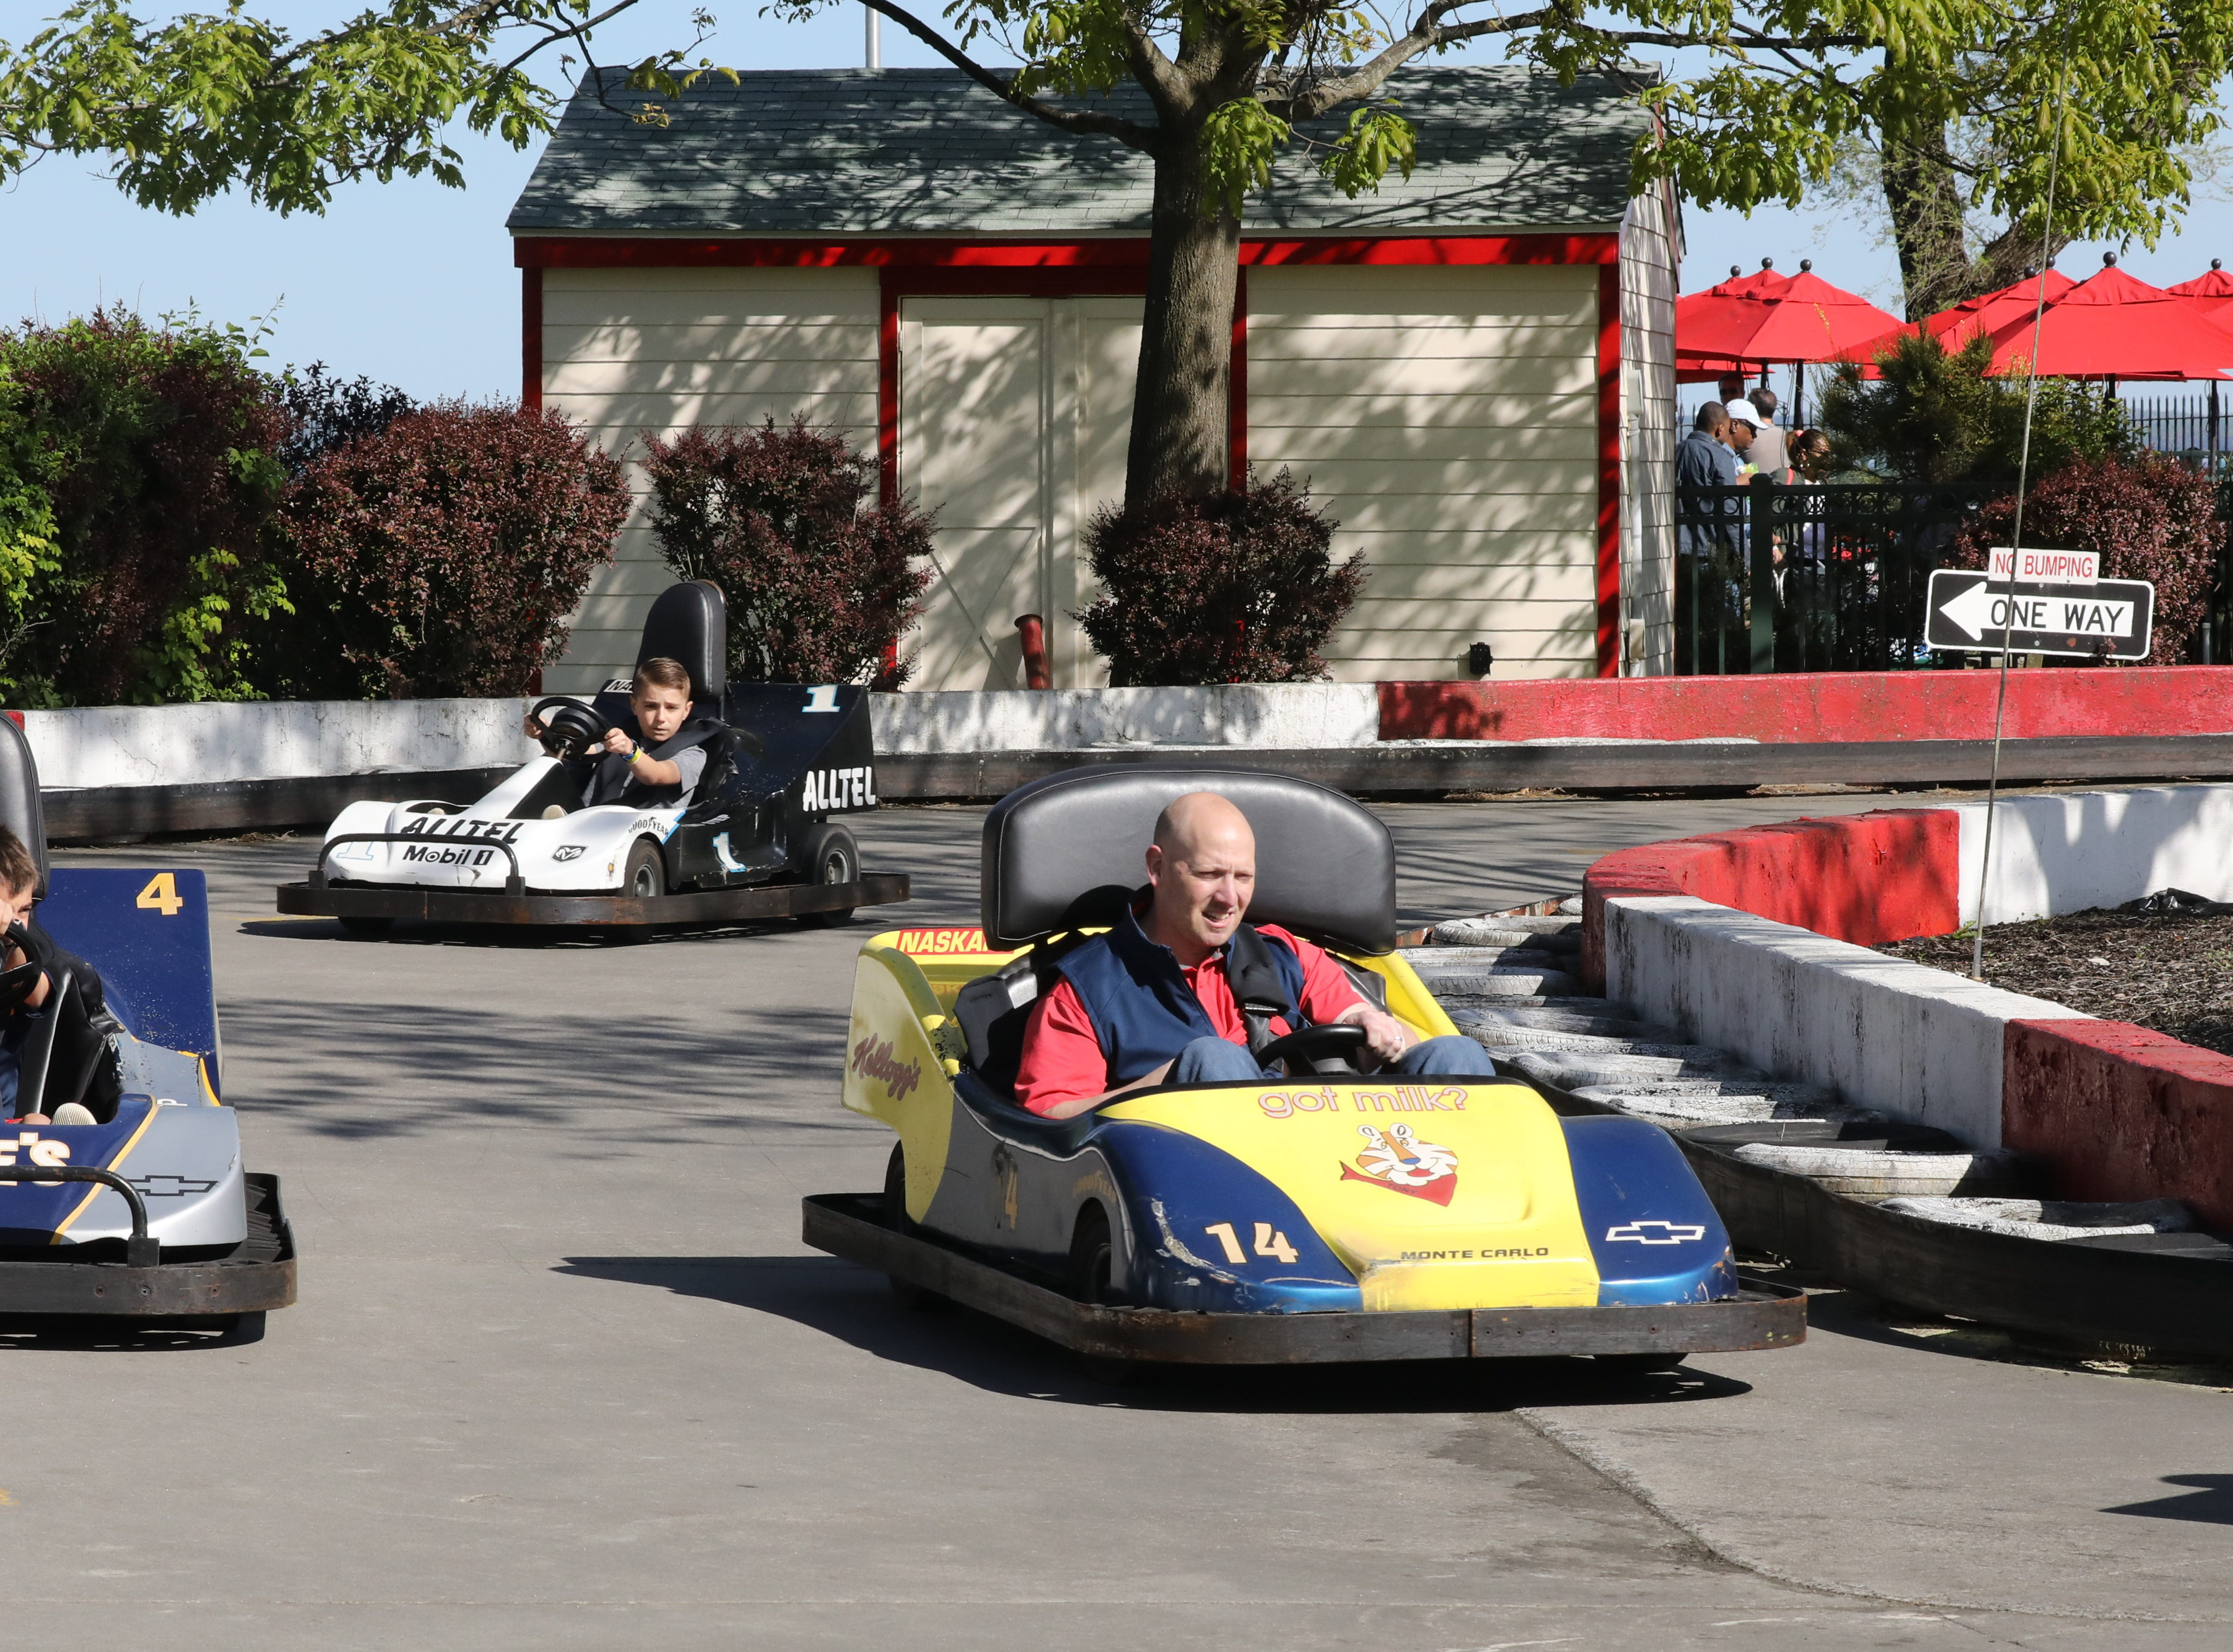 Riders on the go-karts enjoy the beautiful weather during opening day at Playland in Rye, May 11, 2019.